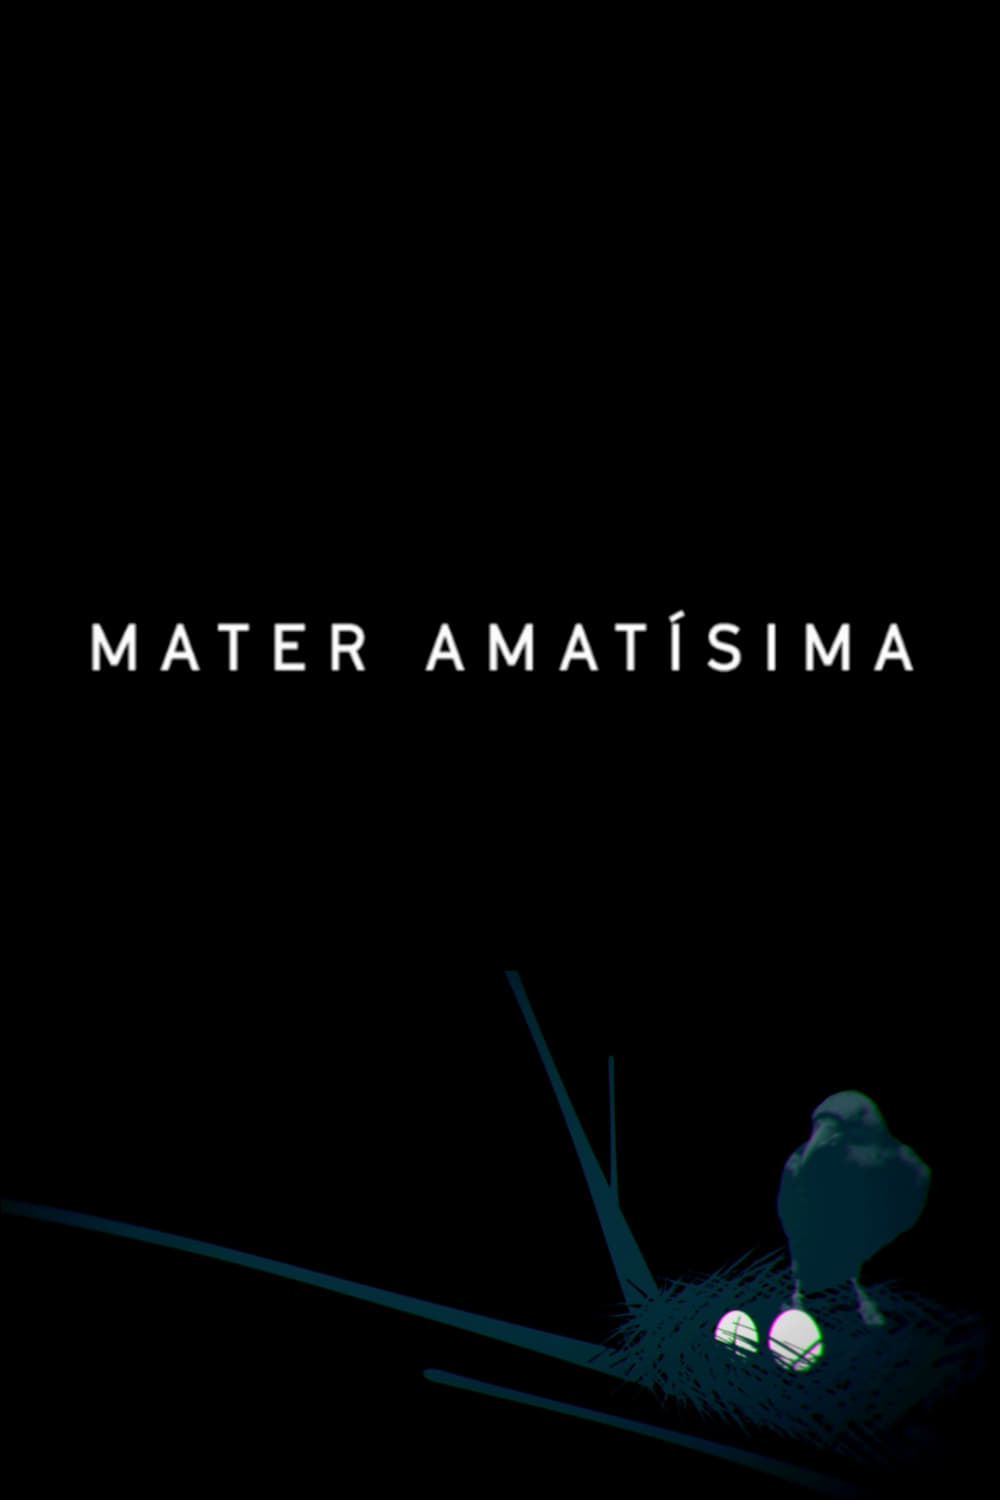 Mater amatísima: Imaginaries and Discourses on Maternity in Times of Change